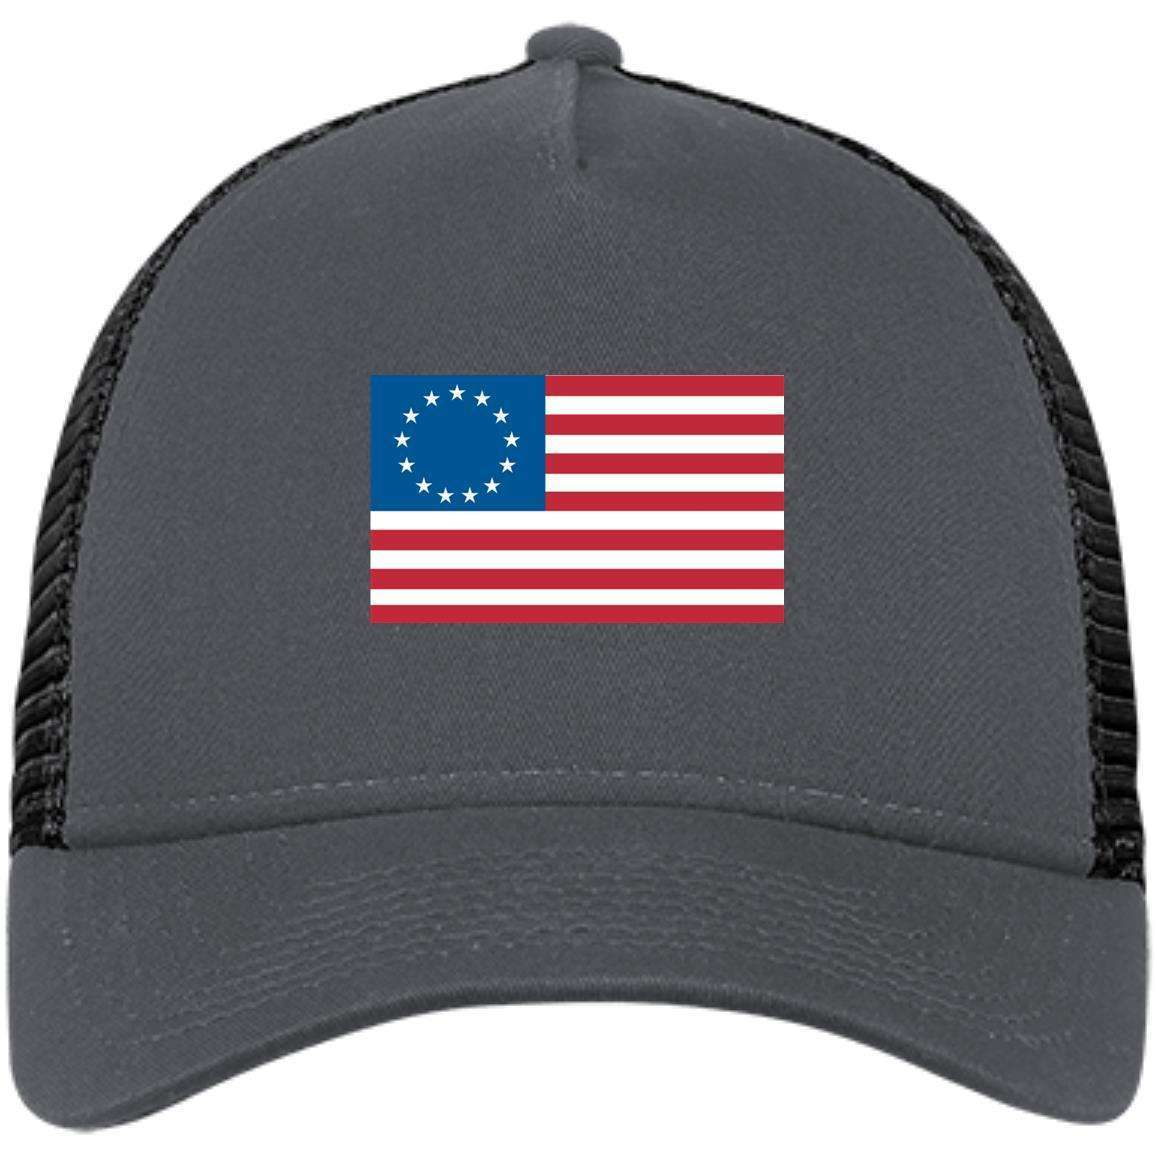 Betsy Ross Flag Original Snapback Trucker Cap